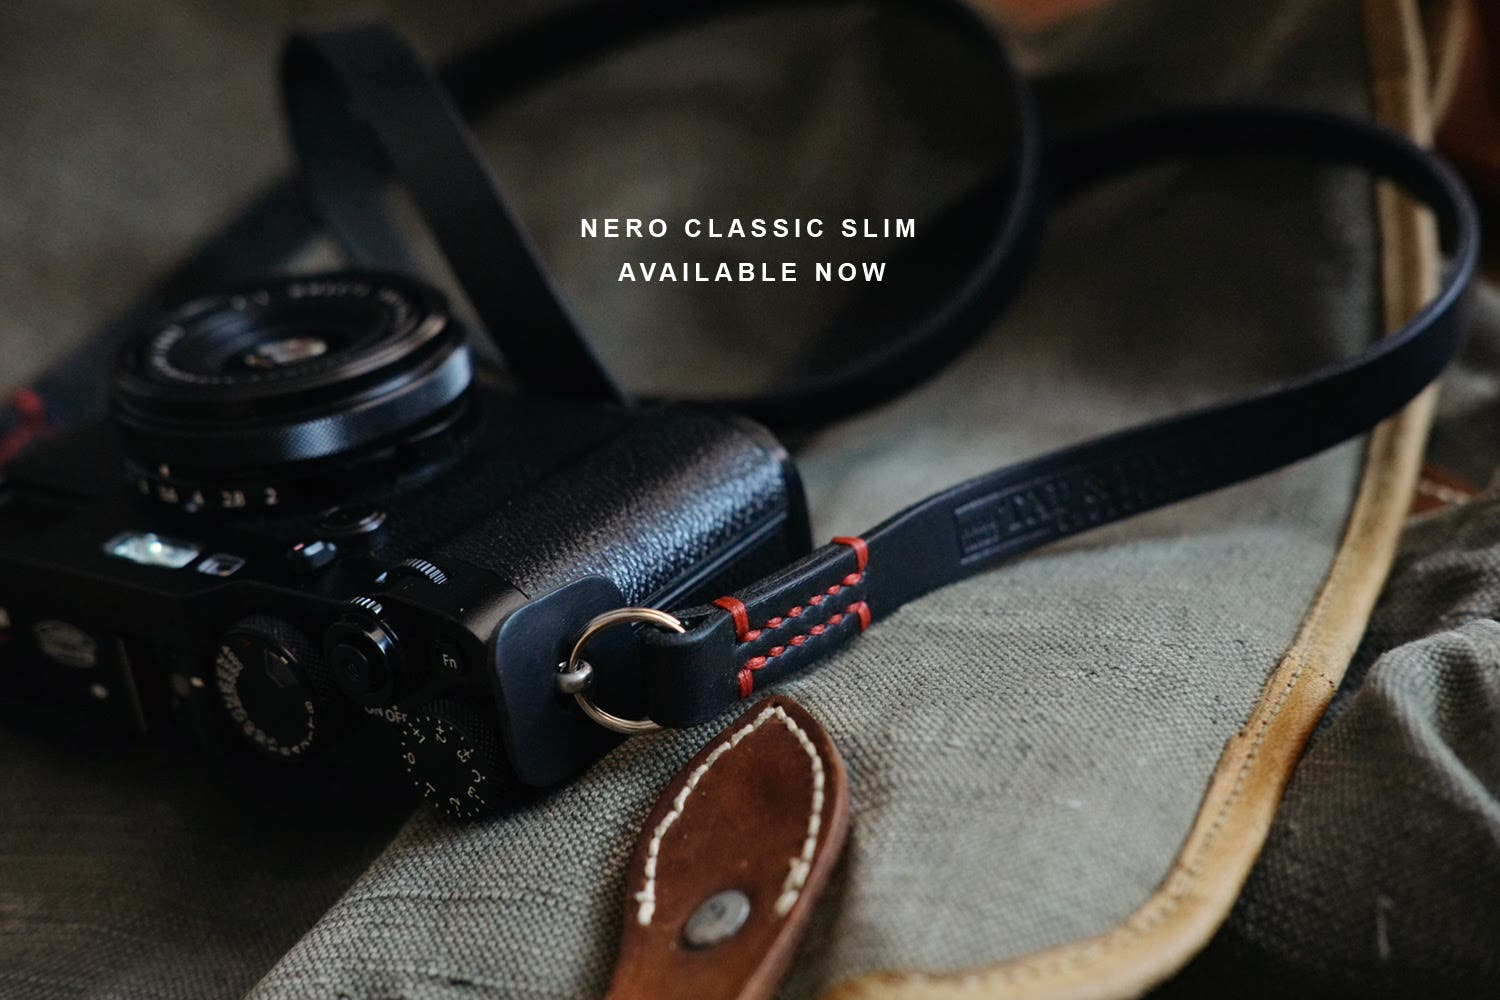 TAP and DYE Adds Nero Slim to the Legacy Camera Strap Line